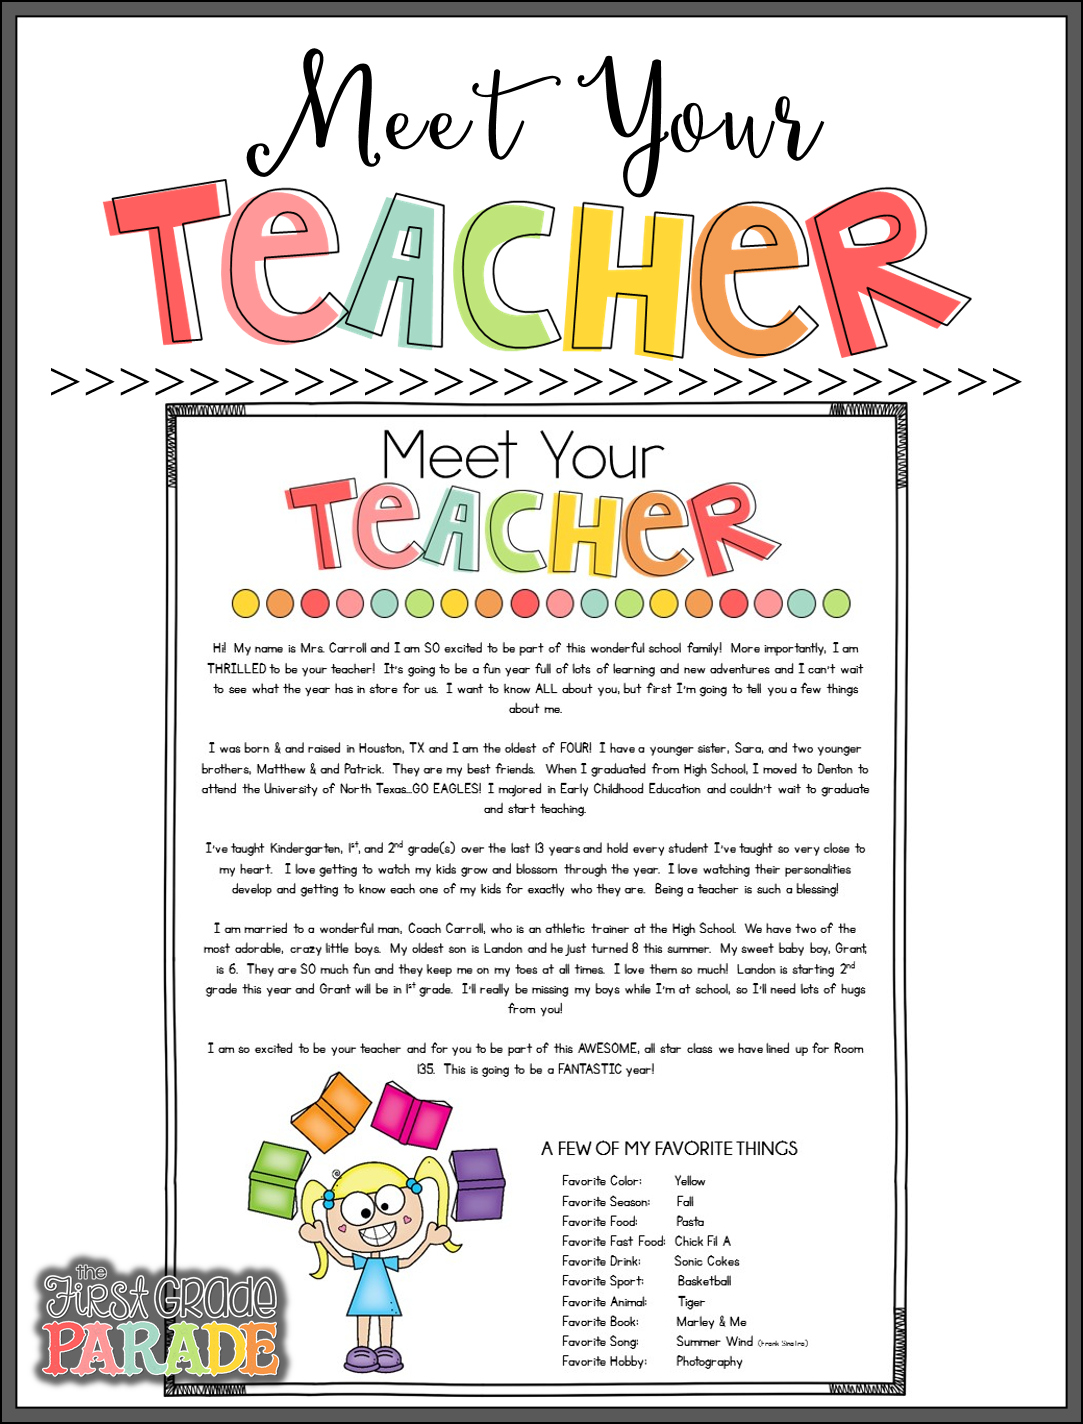 Meet the Teacher Tips & Ideas - The First Grade Parade